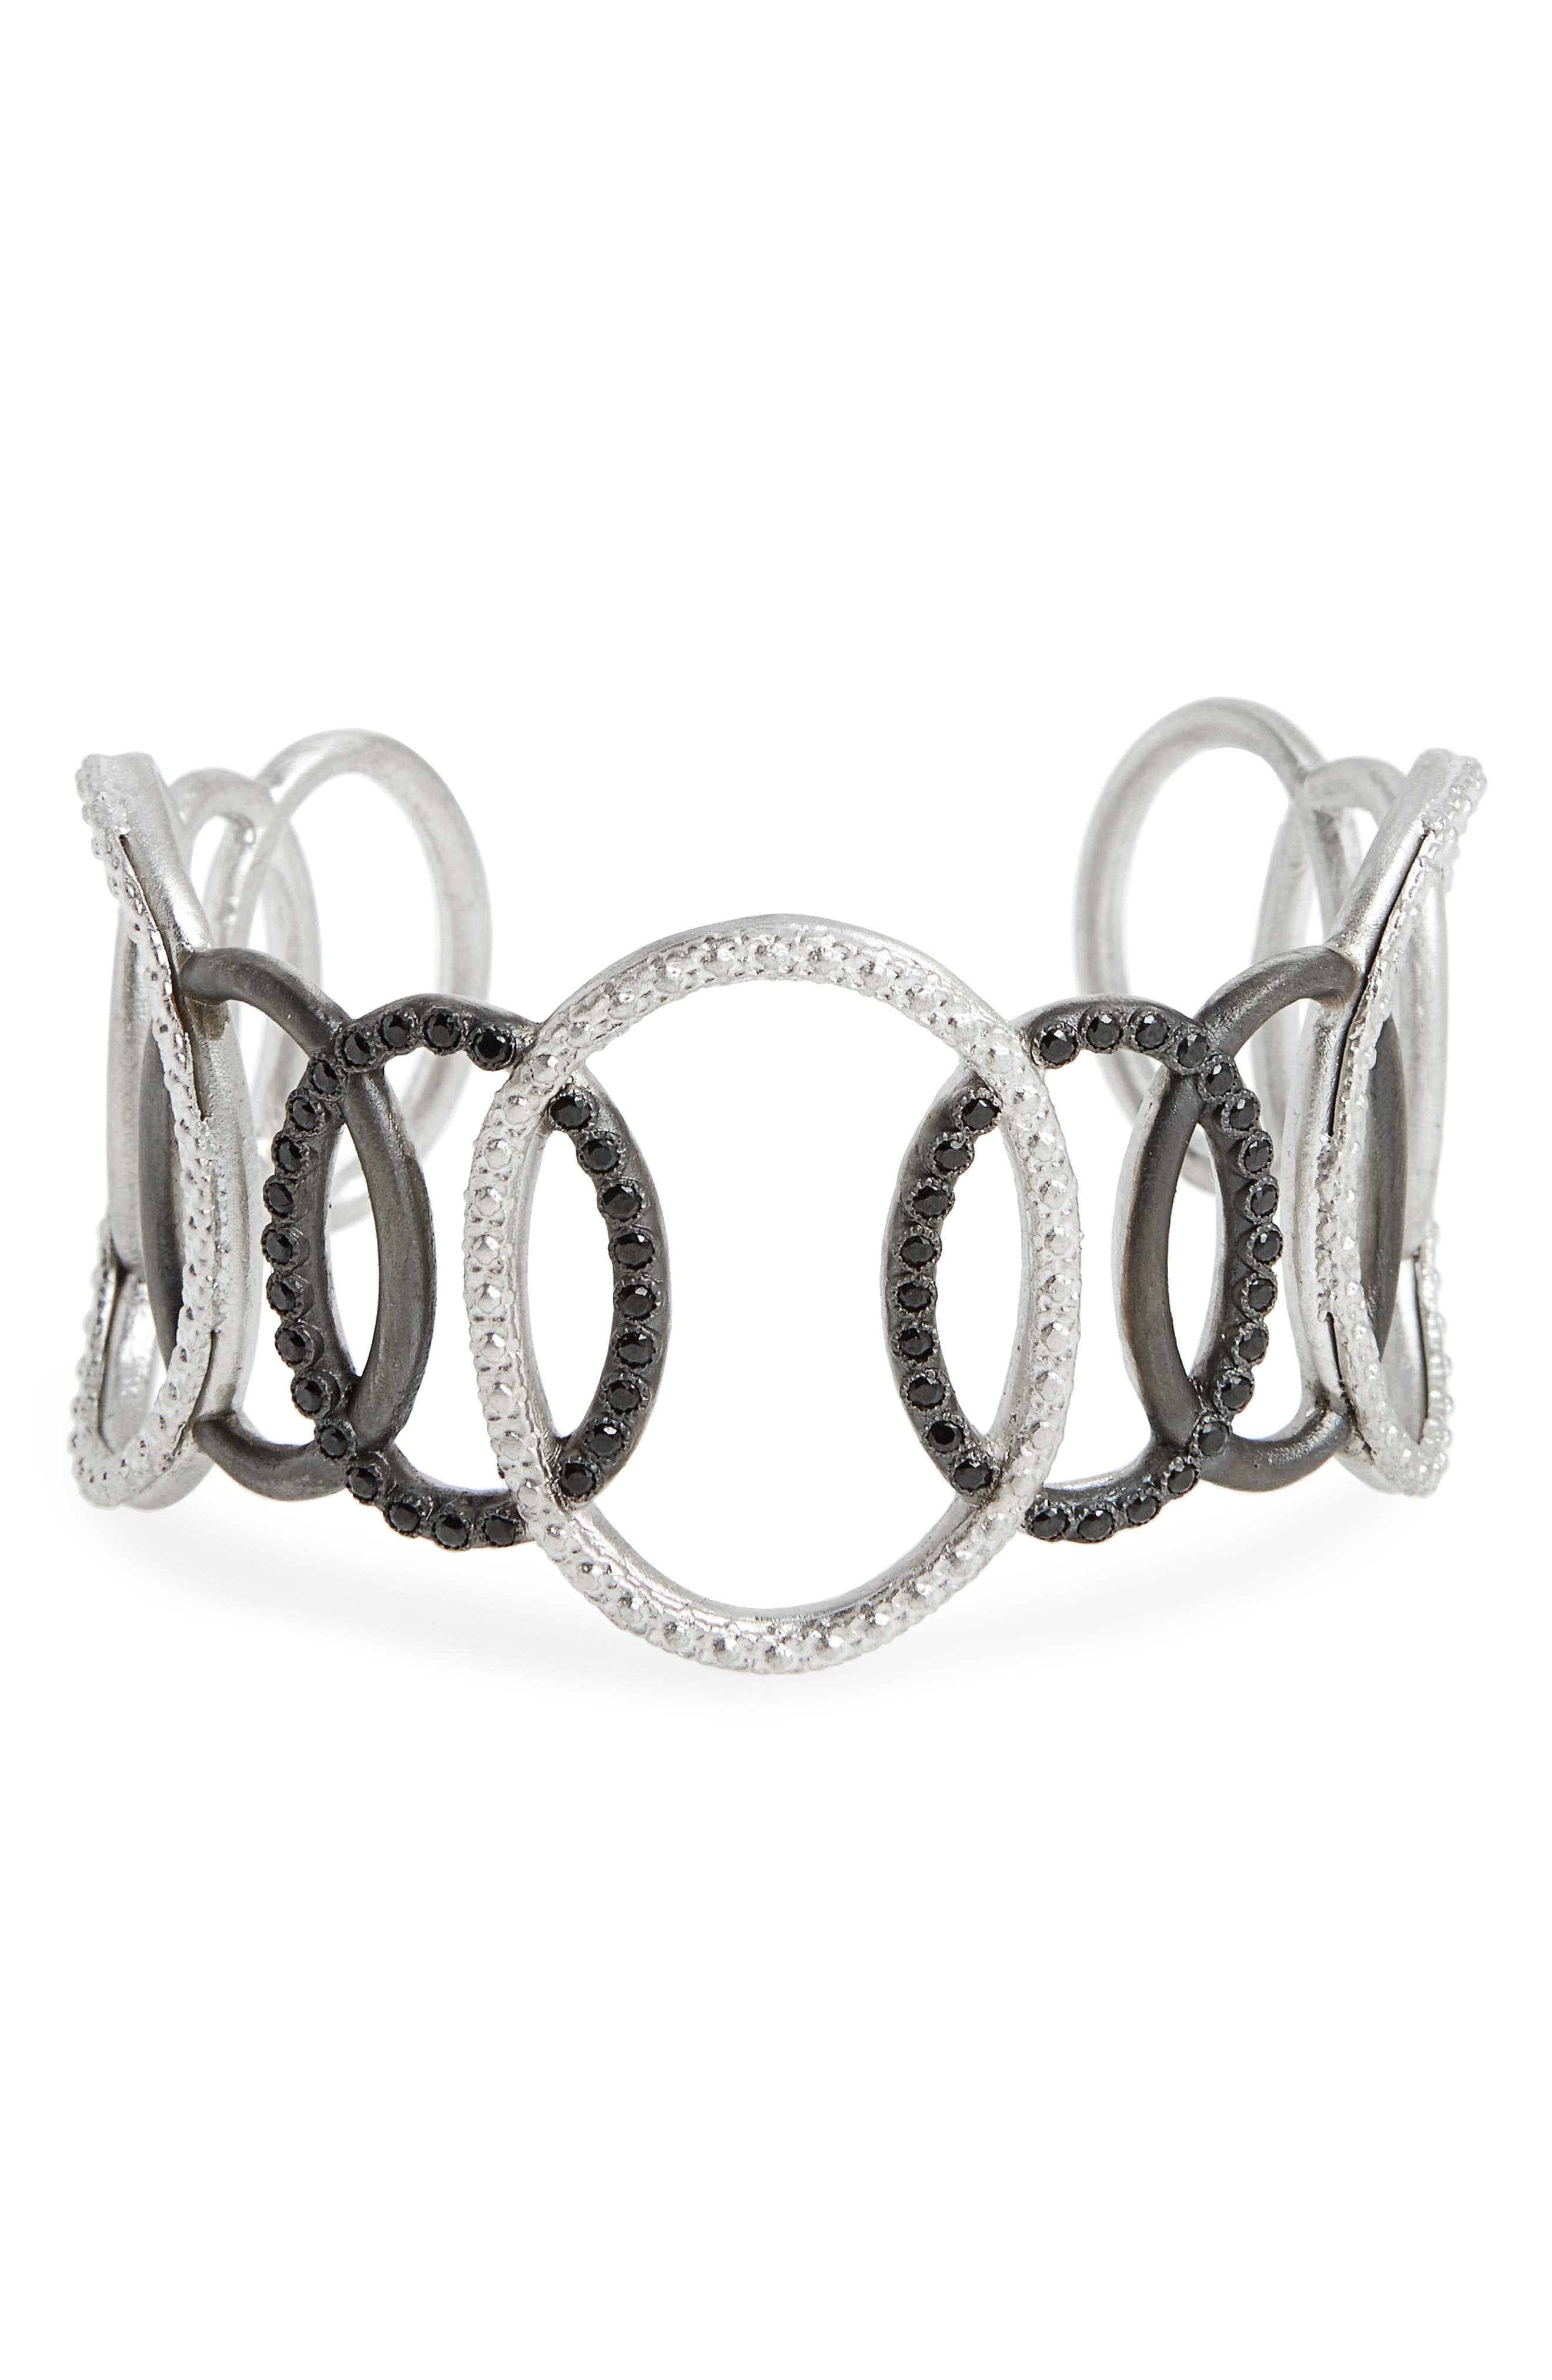 Main Image - Armenta New World Large Open Circle Link Cuff